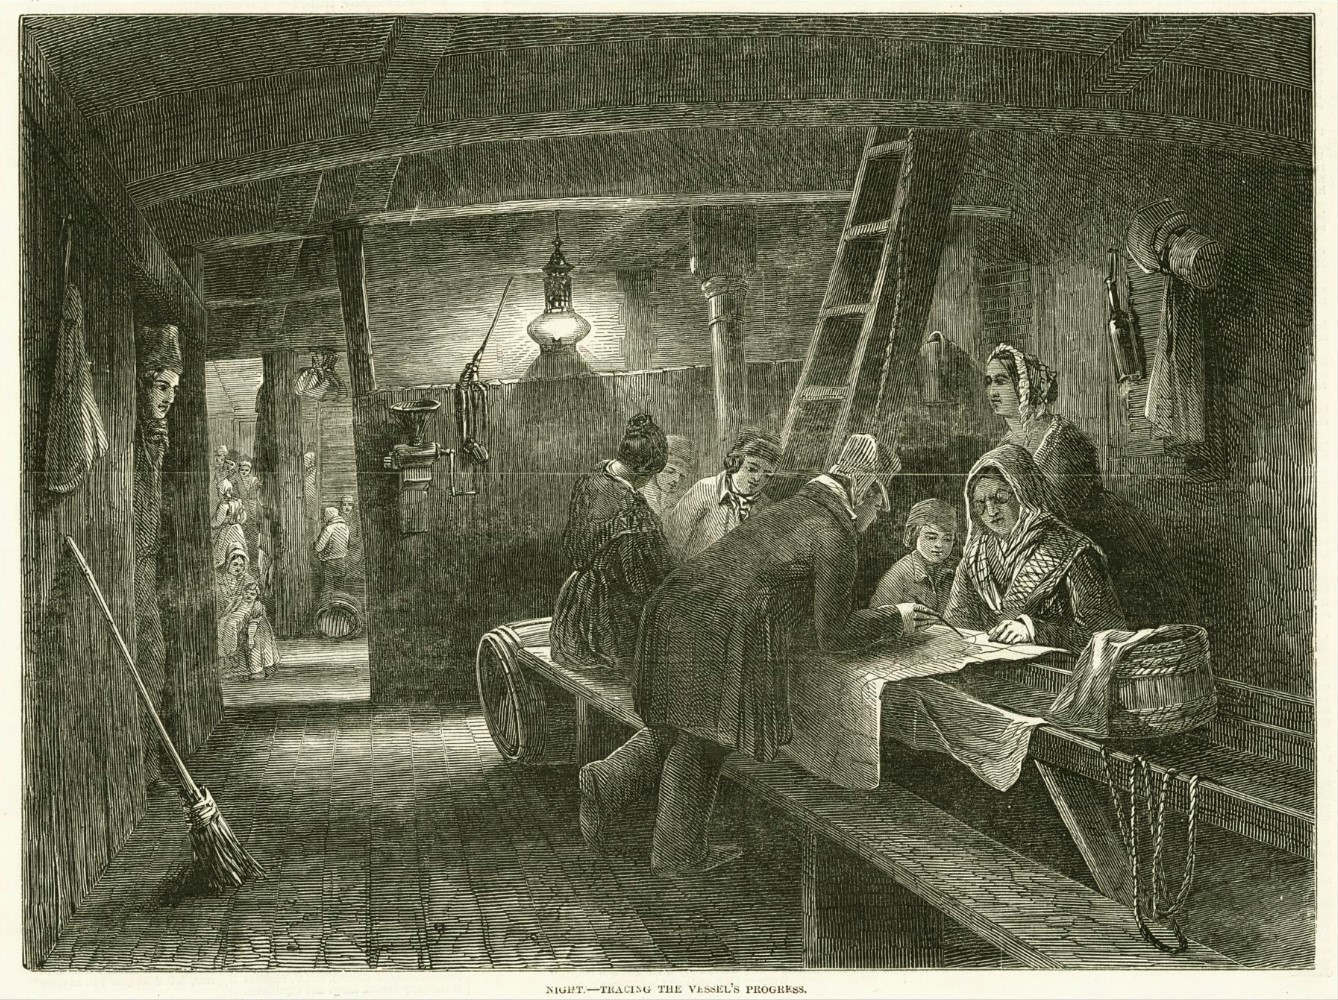 Passengers become amateur navigators as they trace their vessel's progress on a long 19th century sea voyage. From 'Scenes on board an Australian emigrant ship', The Illustrated London News, 1848.  ANMM Collection 00003594